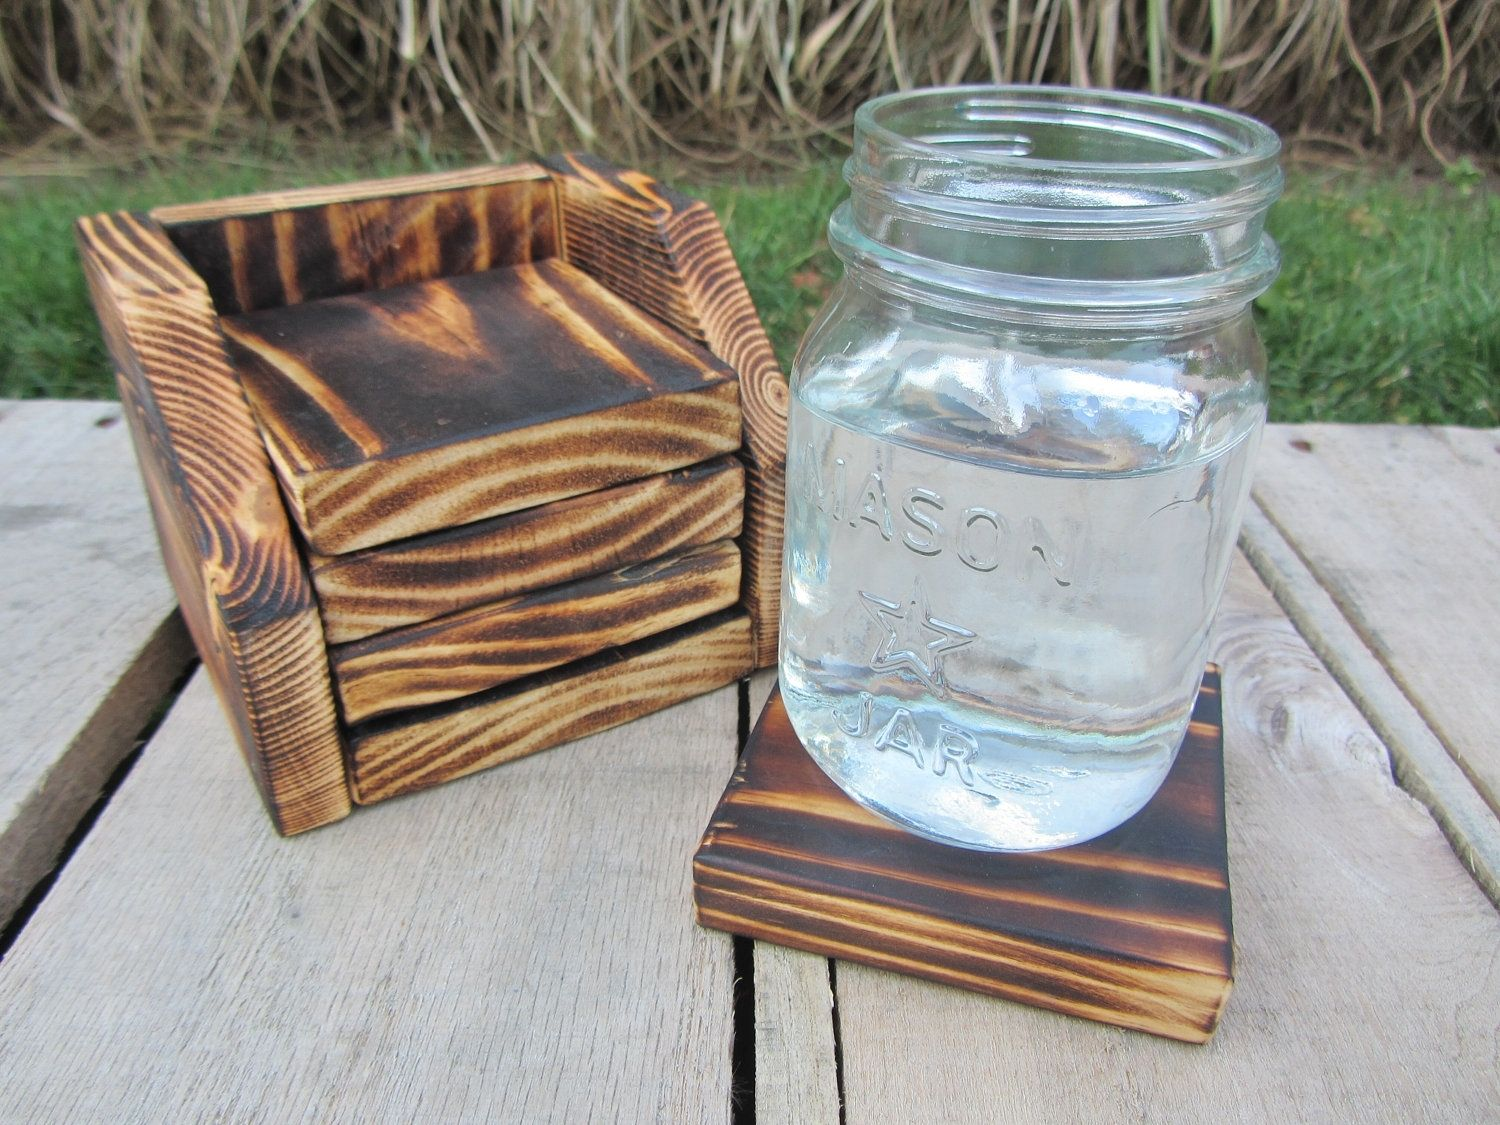 Wood Coaster Holder Hand Crafted Coaster Set Of 4 With Holder Made From